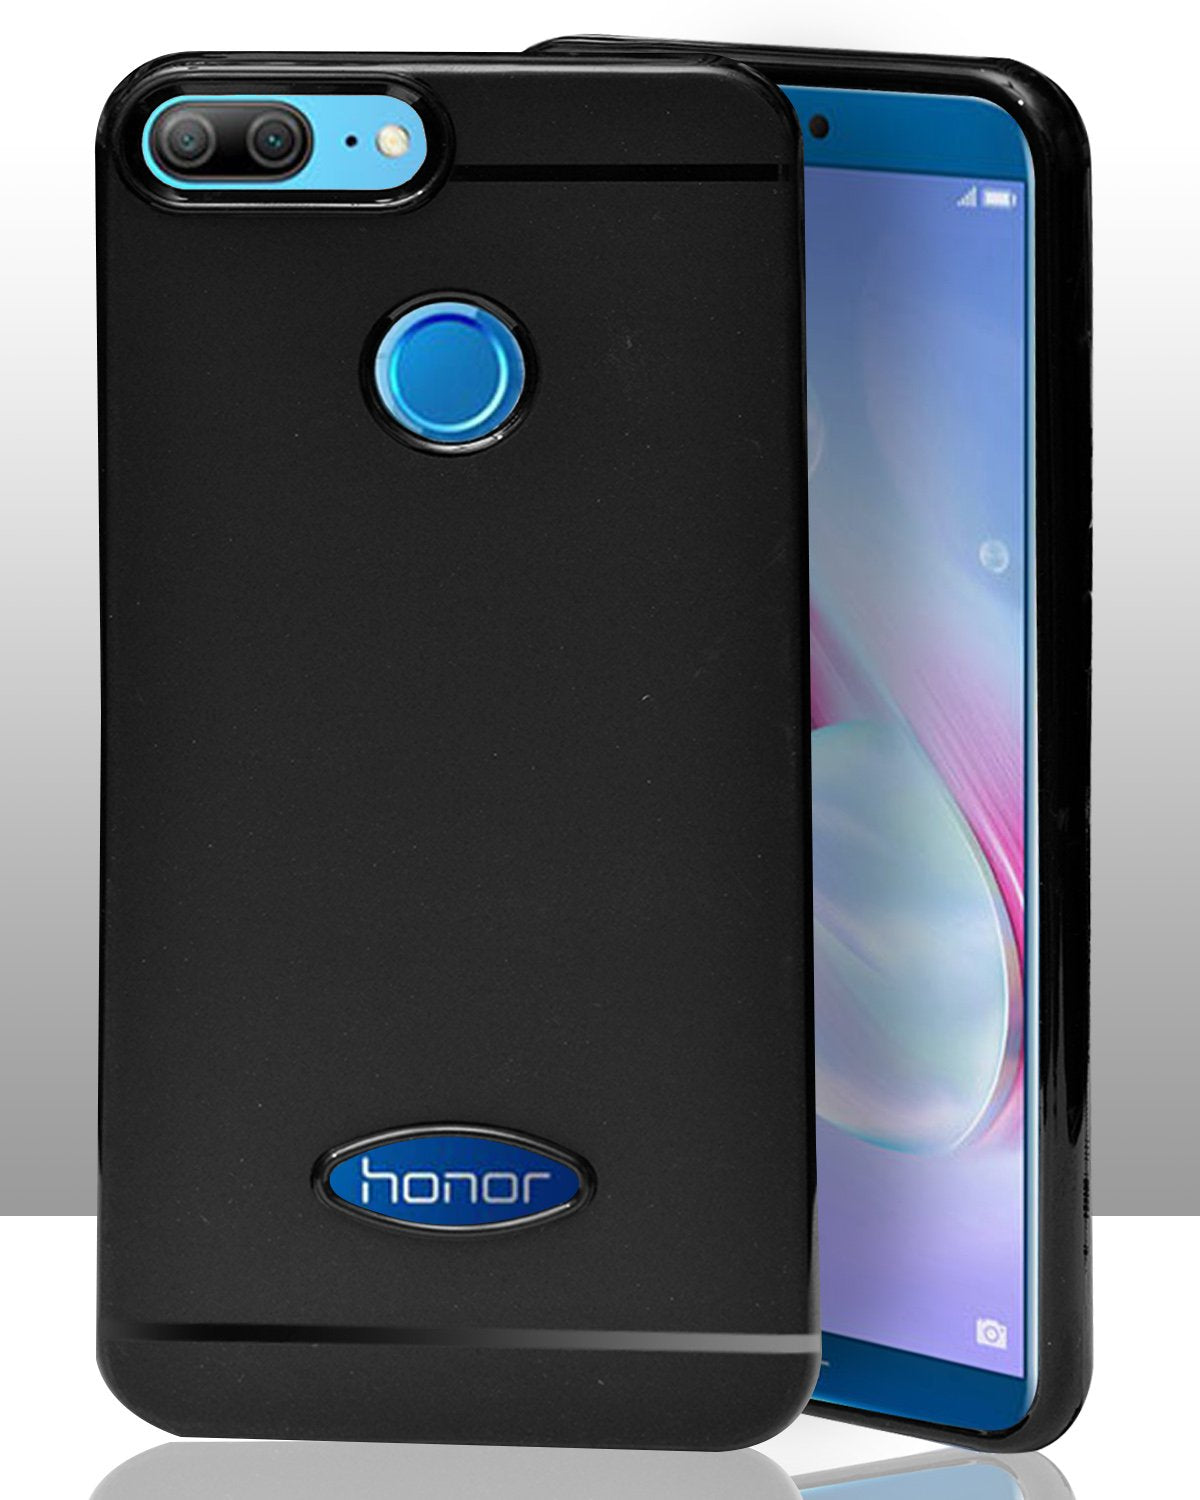 Huawei Honor 9 Lite Silicon Soft Back Cover Protective Case (Black)